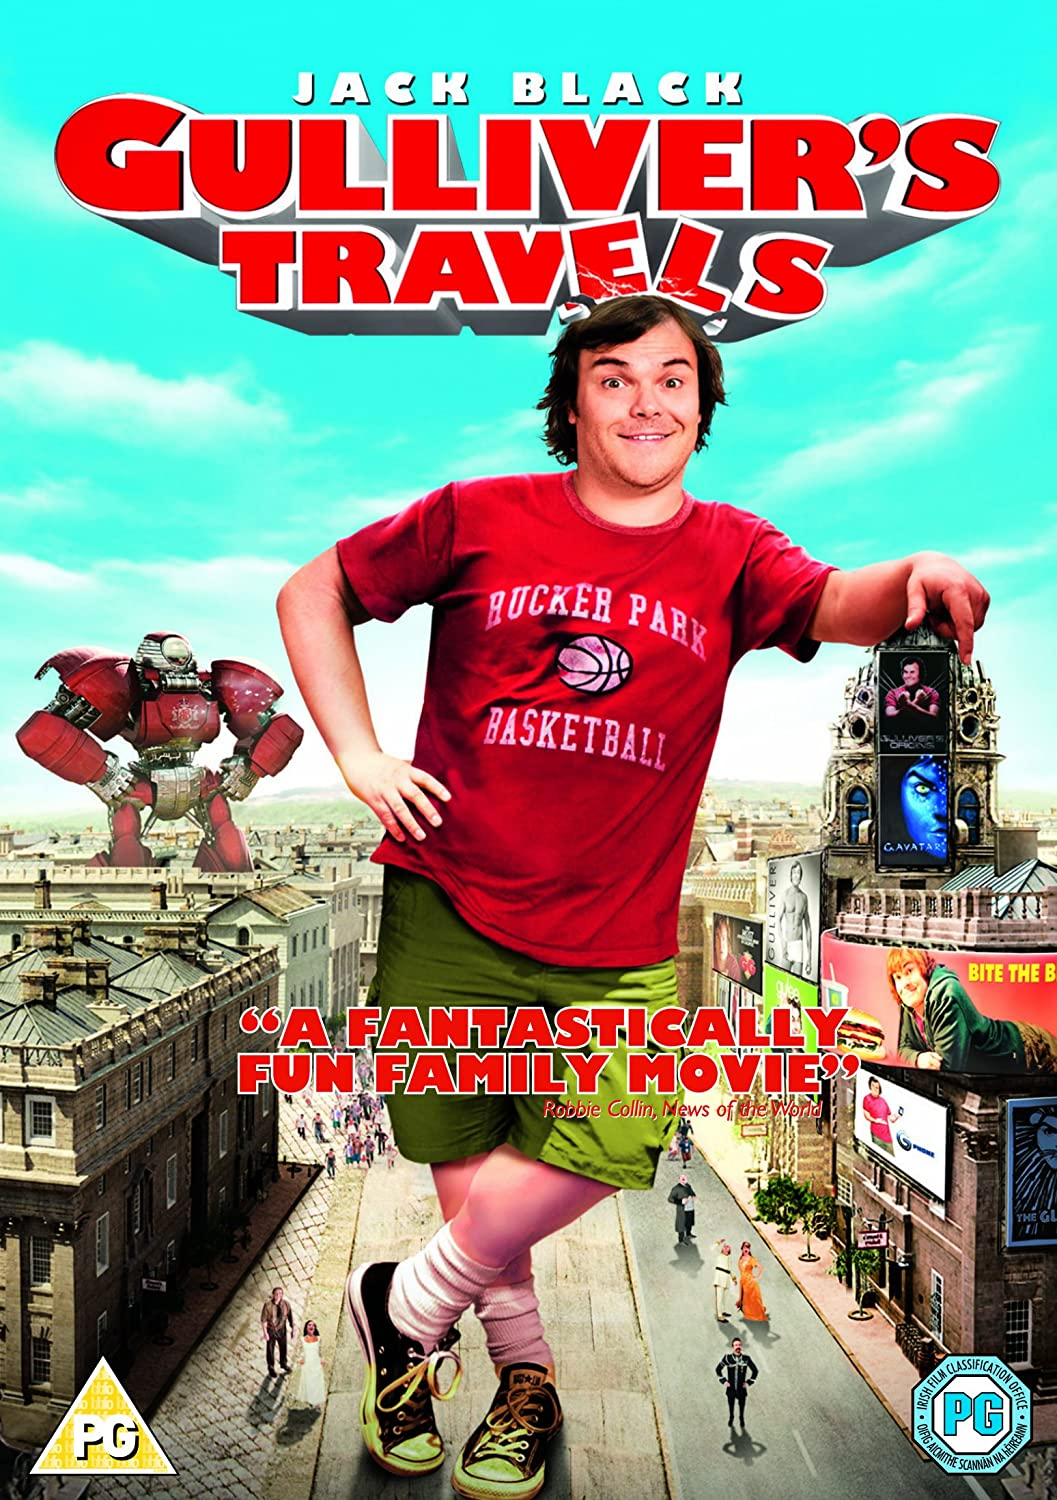 Gulliver's Travels [2010] 720p BRRip [Dual Audio] [English + Hindi 5.1] x264